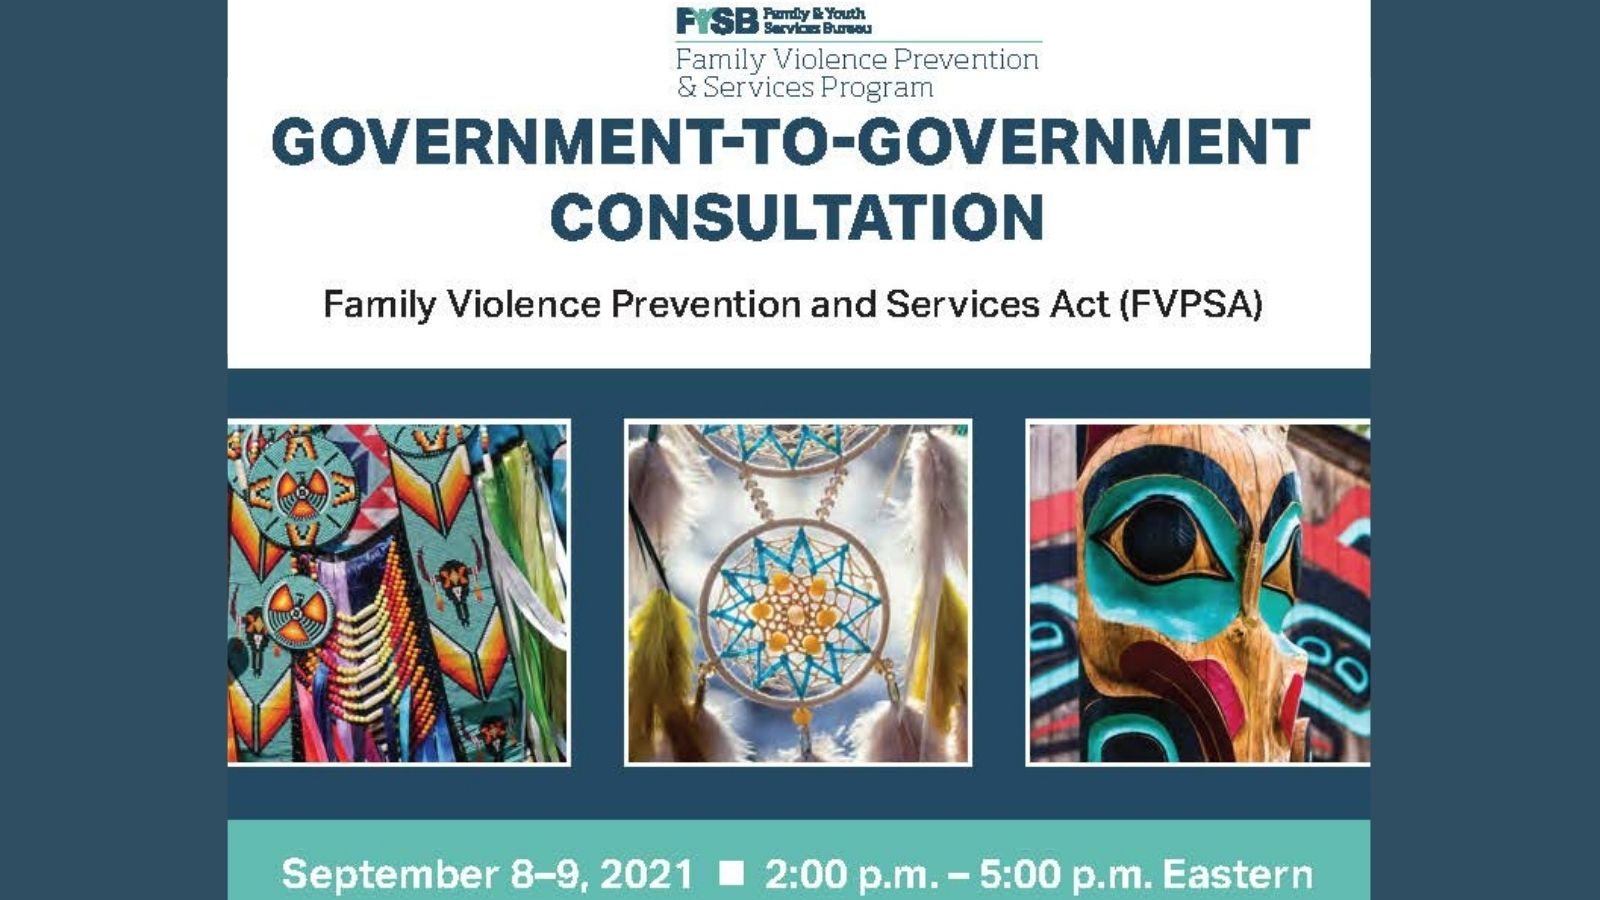 """Blue banner with logo and text at top """"FYSB Family & Youth Services Bureau, Family Violence Prevention & Services Program, Government-to-Government Consultation, Family Violence Prevention and Services Act (FVPSA)"""" and teal box at bottom with text """"September 8-9, 2021, 2:00 p.m.-5:00 p.m. Eastern""""."""